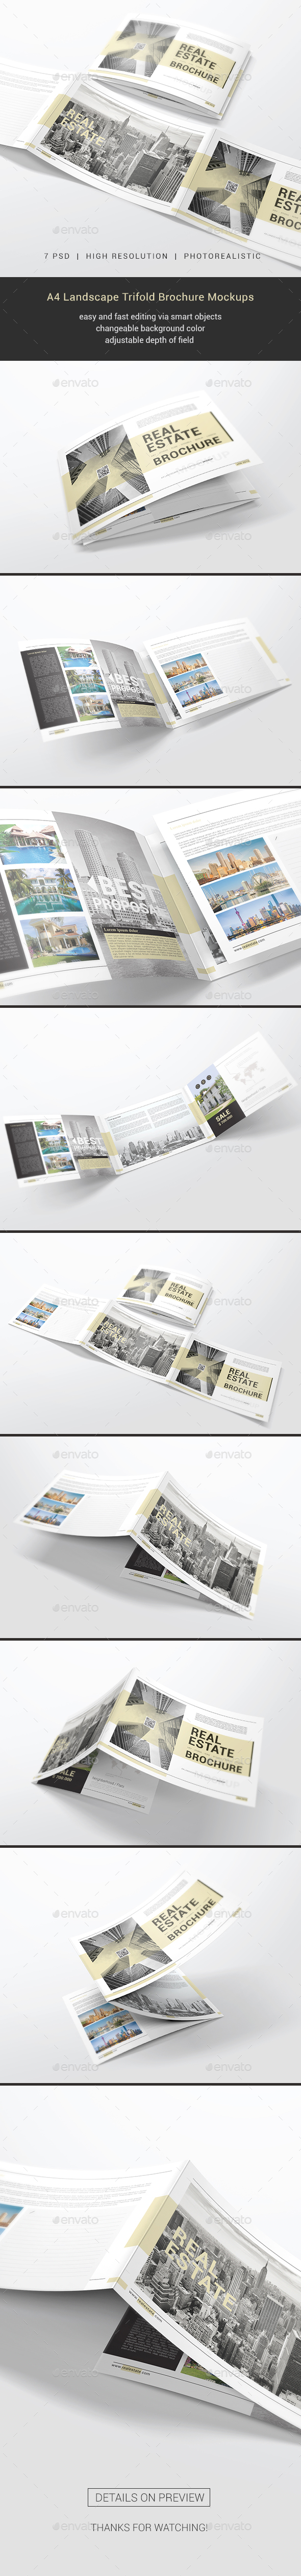 GraphicRiver A4 Trifold Brochure Mockups 21168451